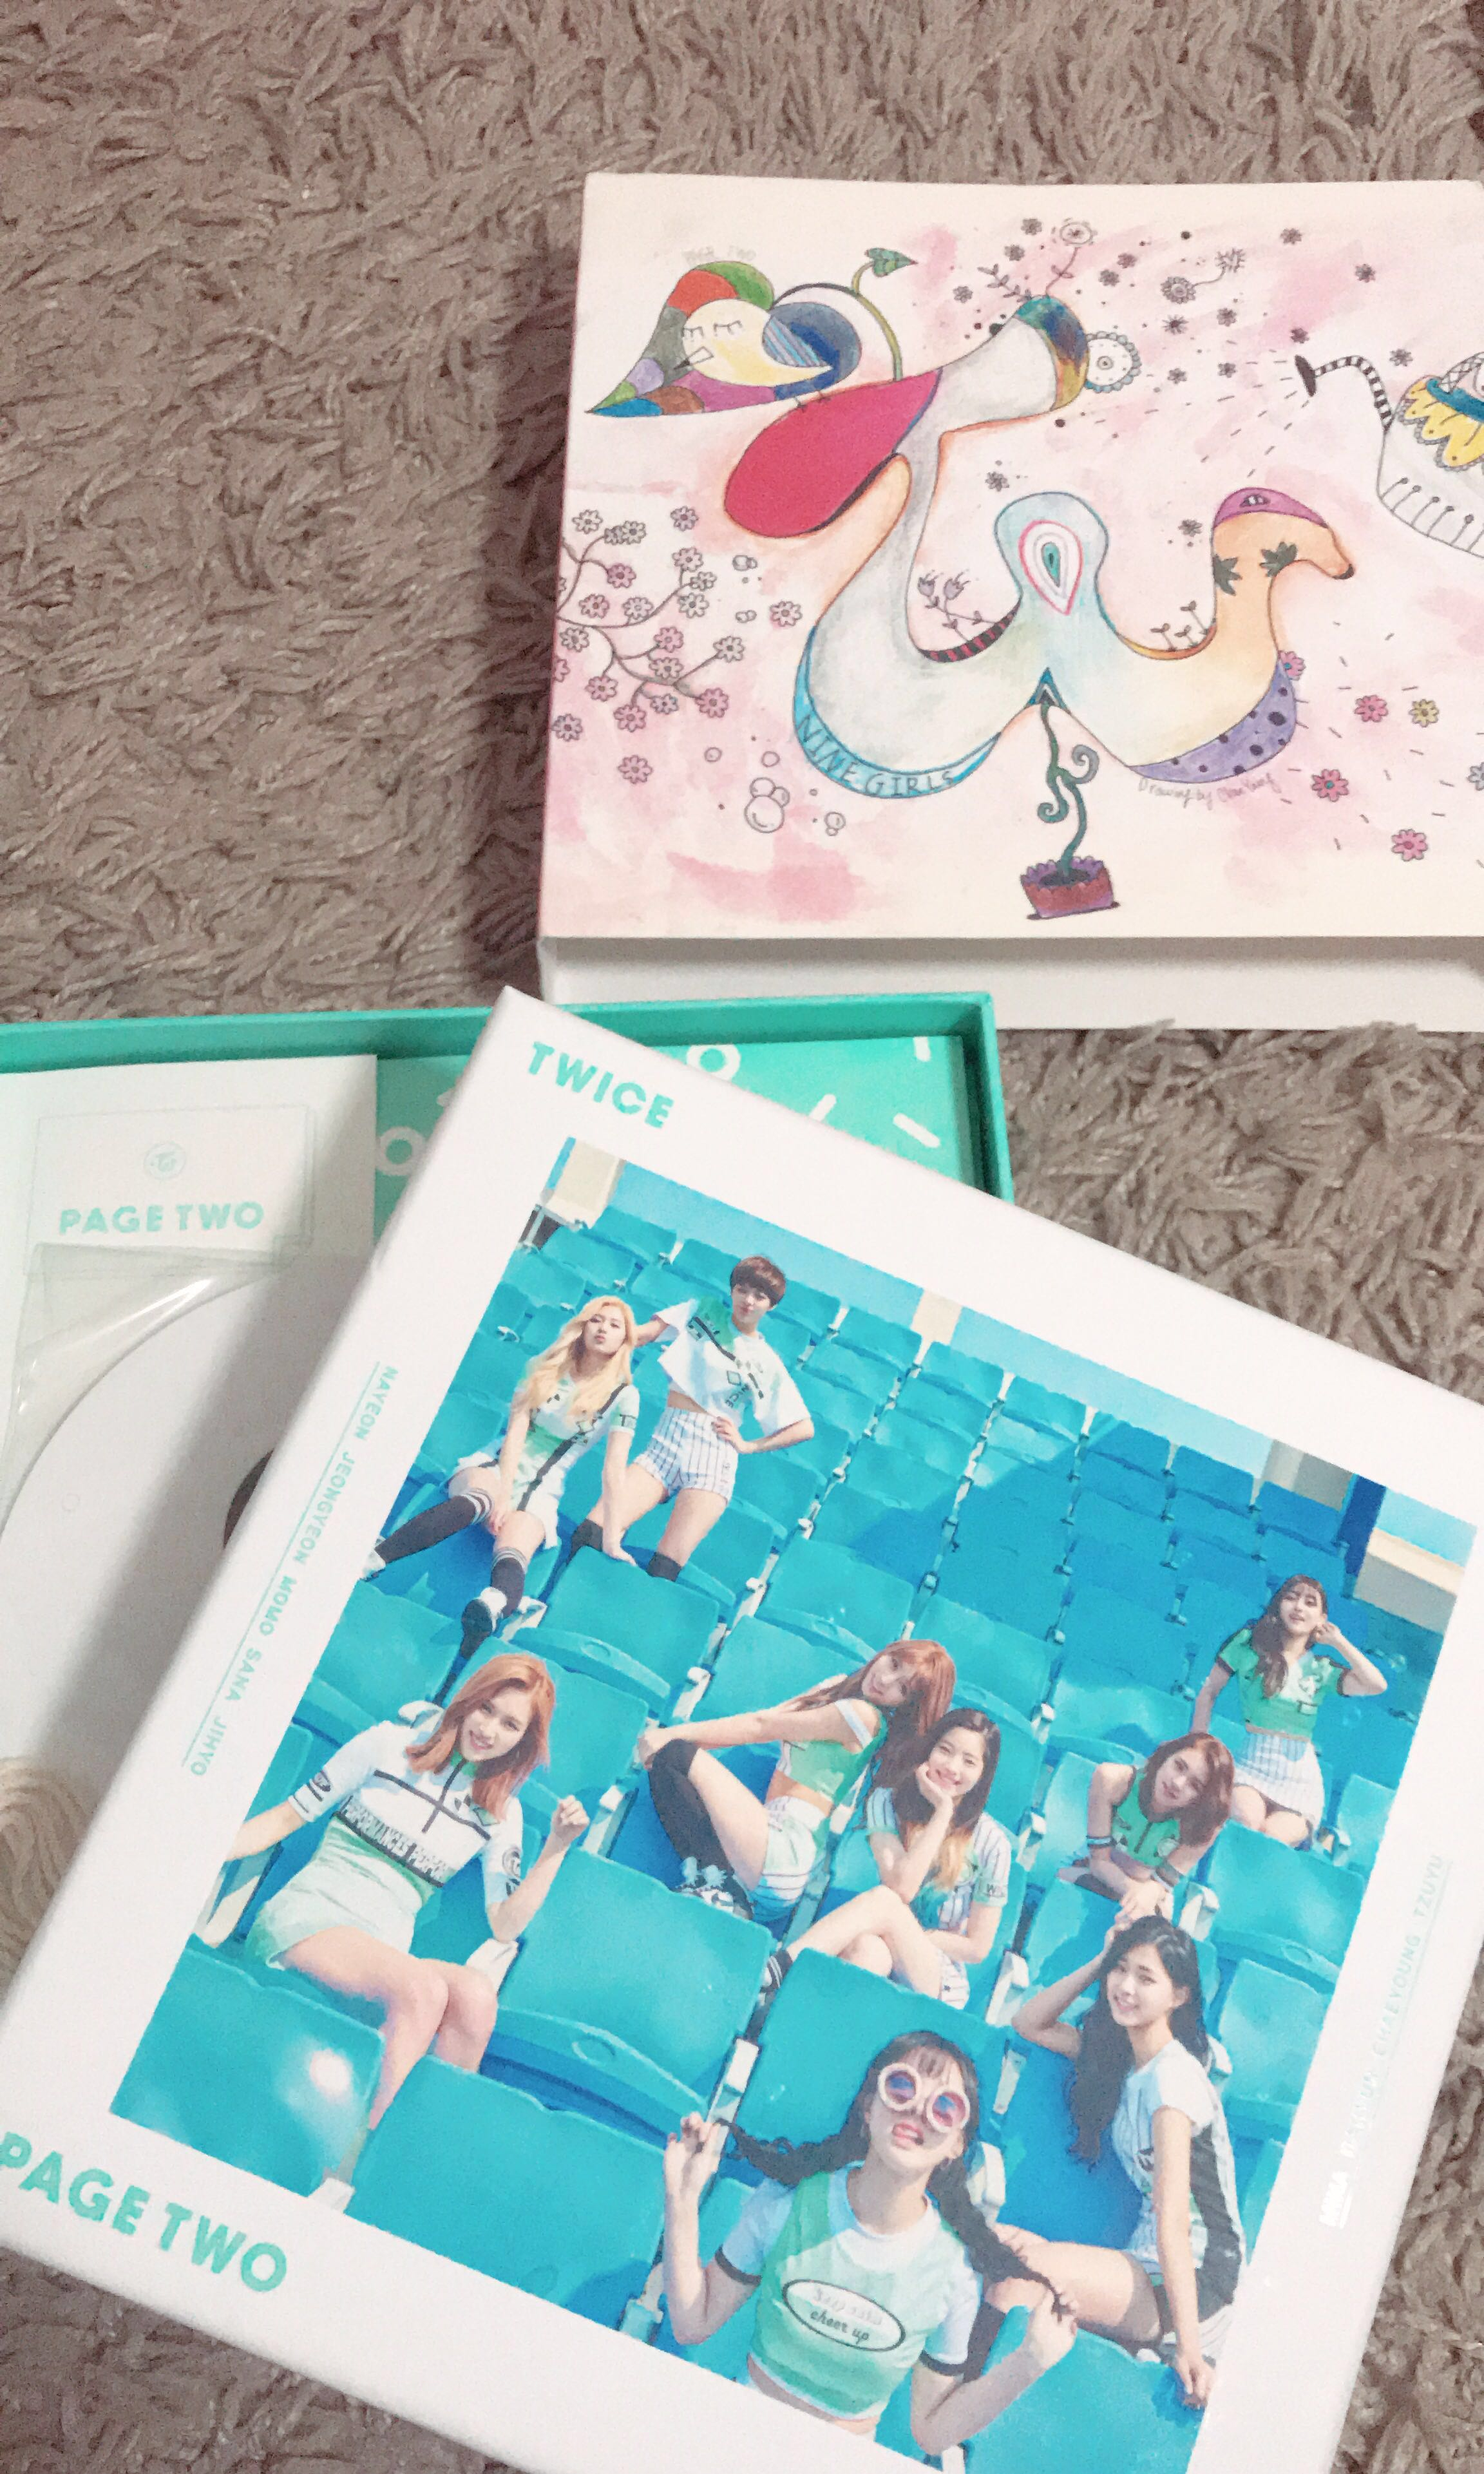 twice cheer up special edition album